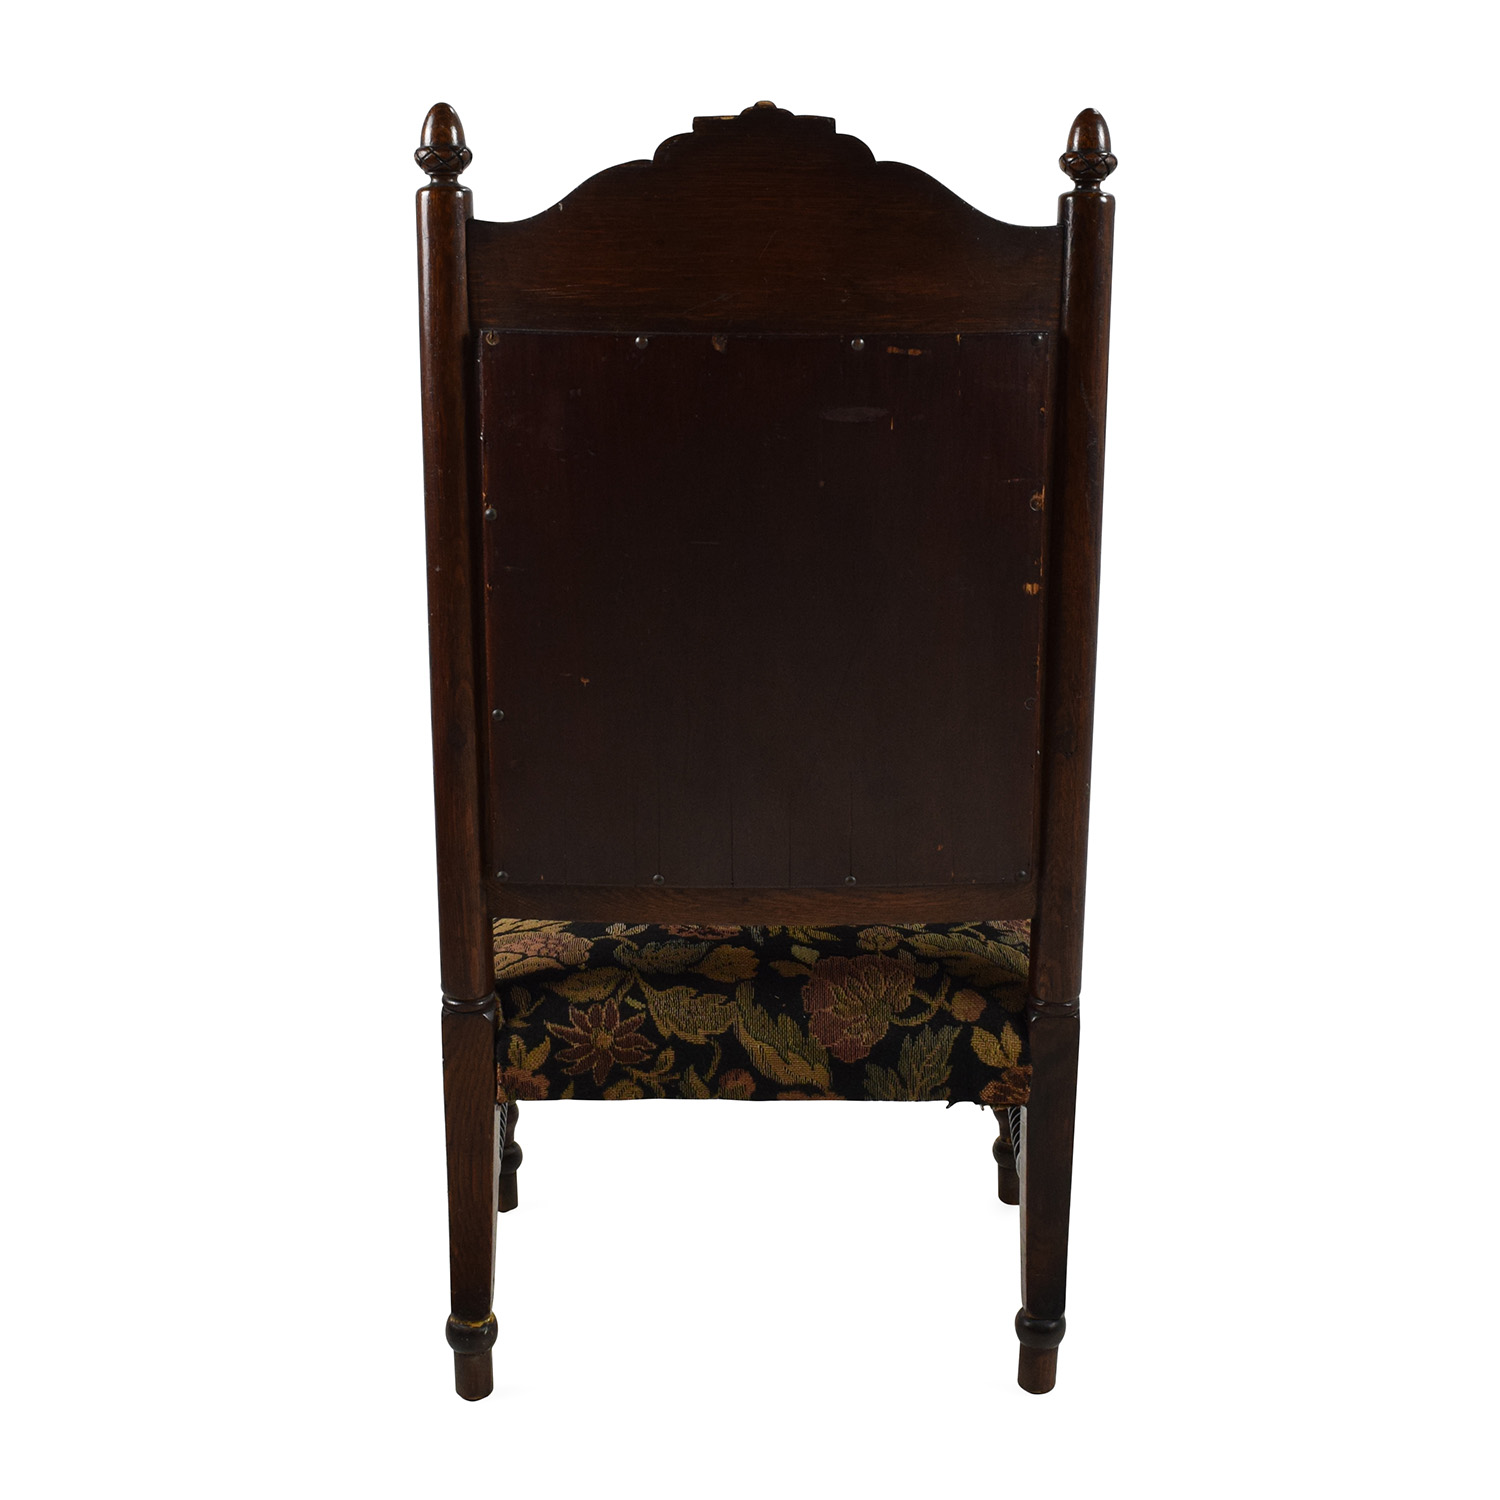 84 OFF  Antique Tudor Upholstered Chair  Chairs